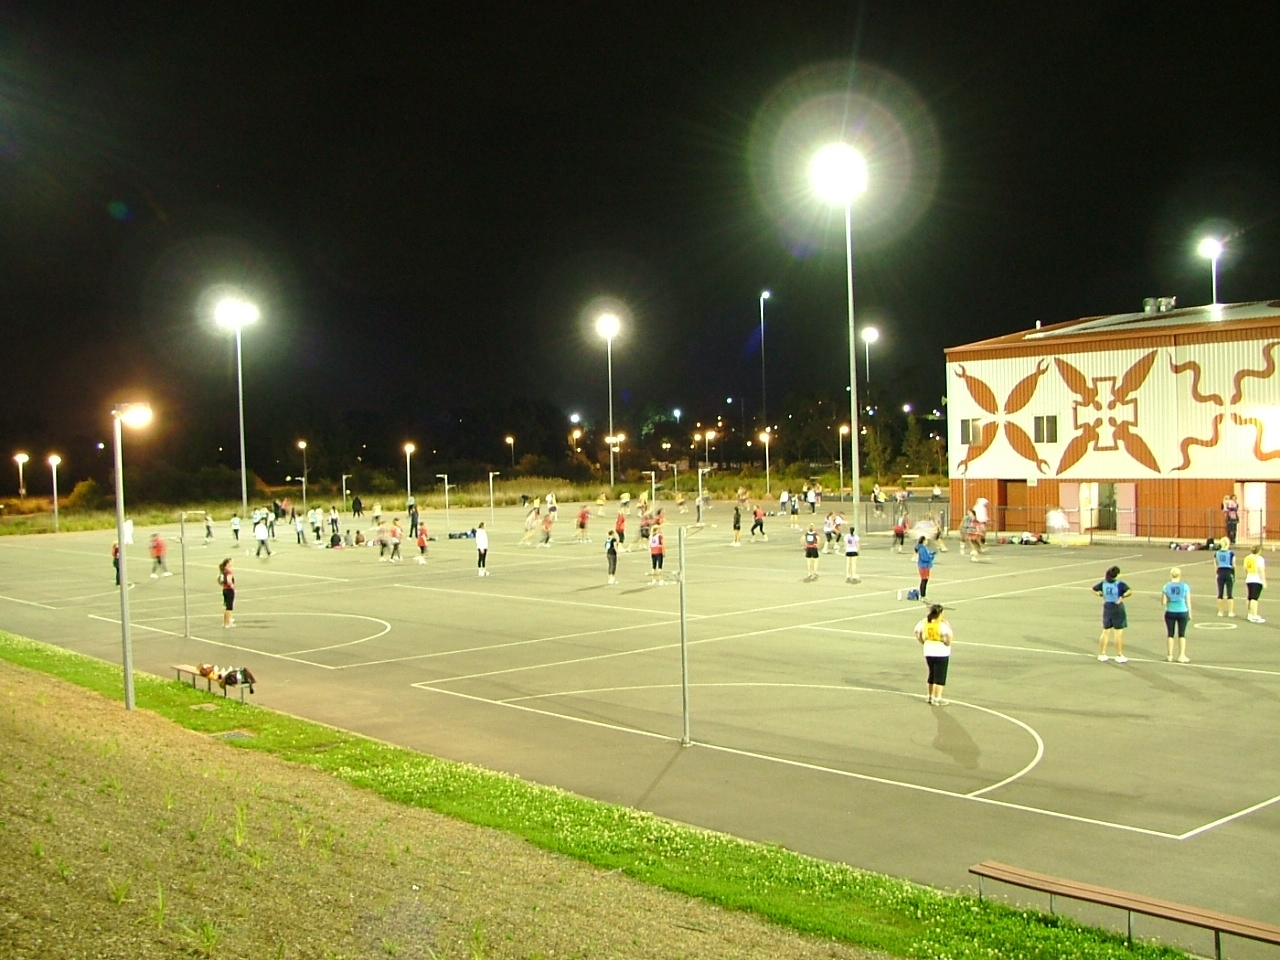 People playing on a netball court.